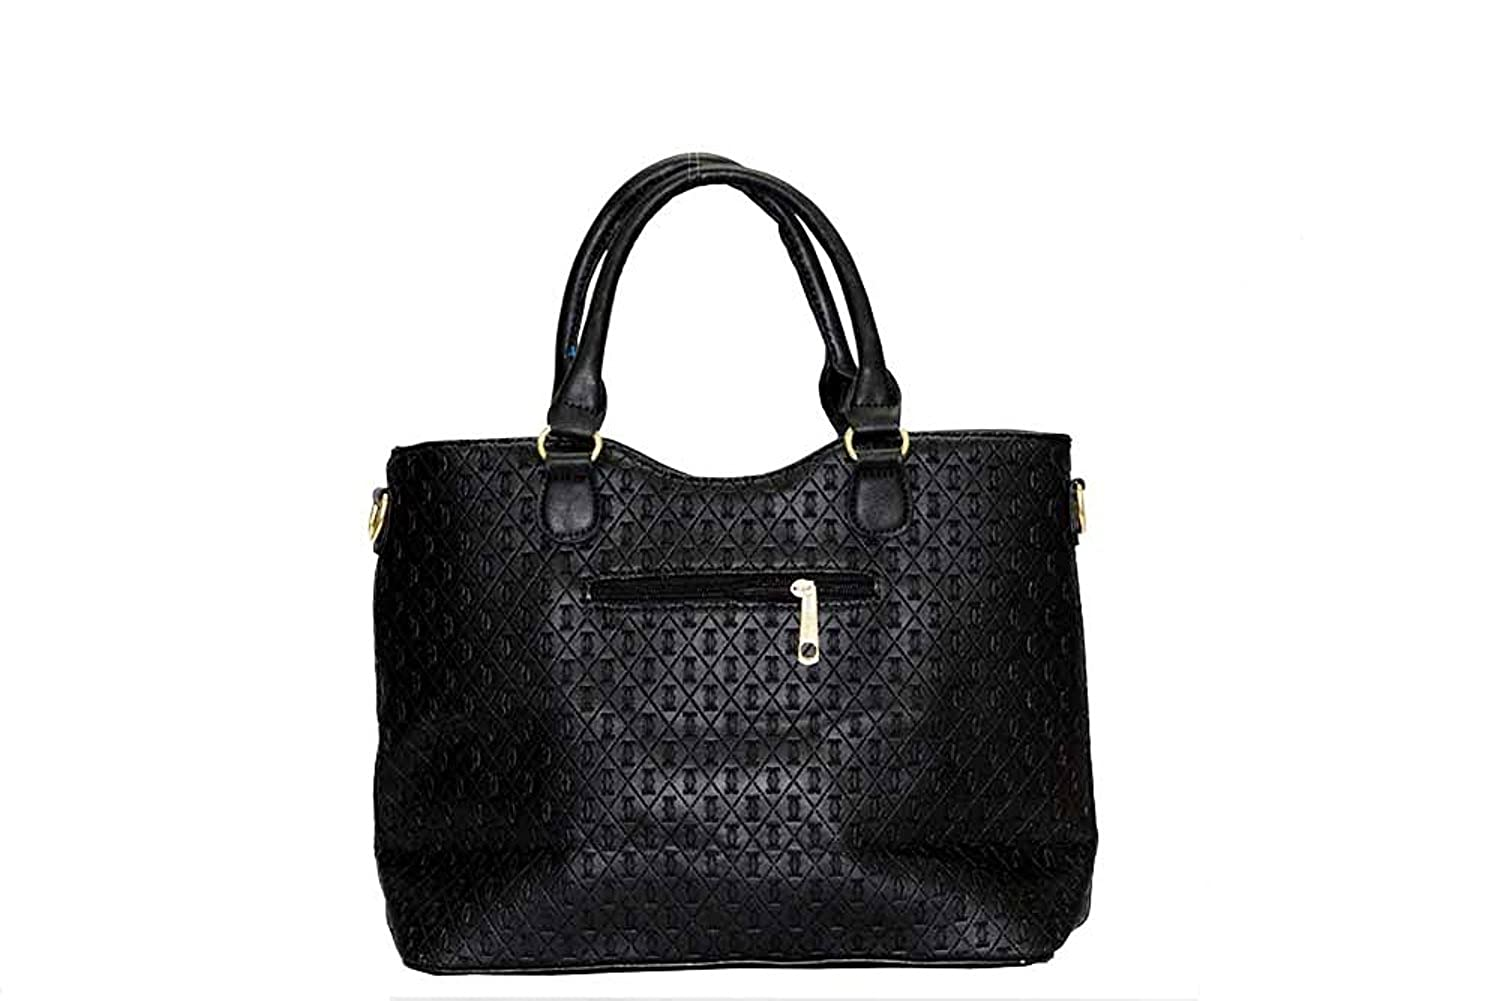 6c881c3fed Snyter Handbags For Women - Premium Stylish Shoulder Bag For Women   Girls  – Handheld Bags For College Office - Double Handle Zip Designer Handbags  For ...